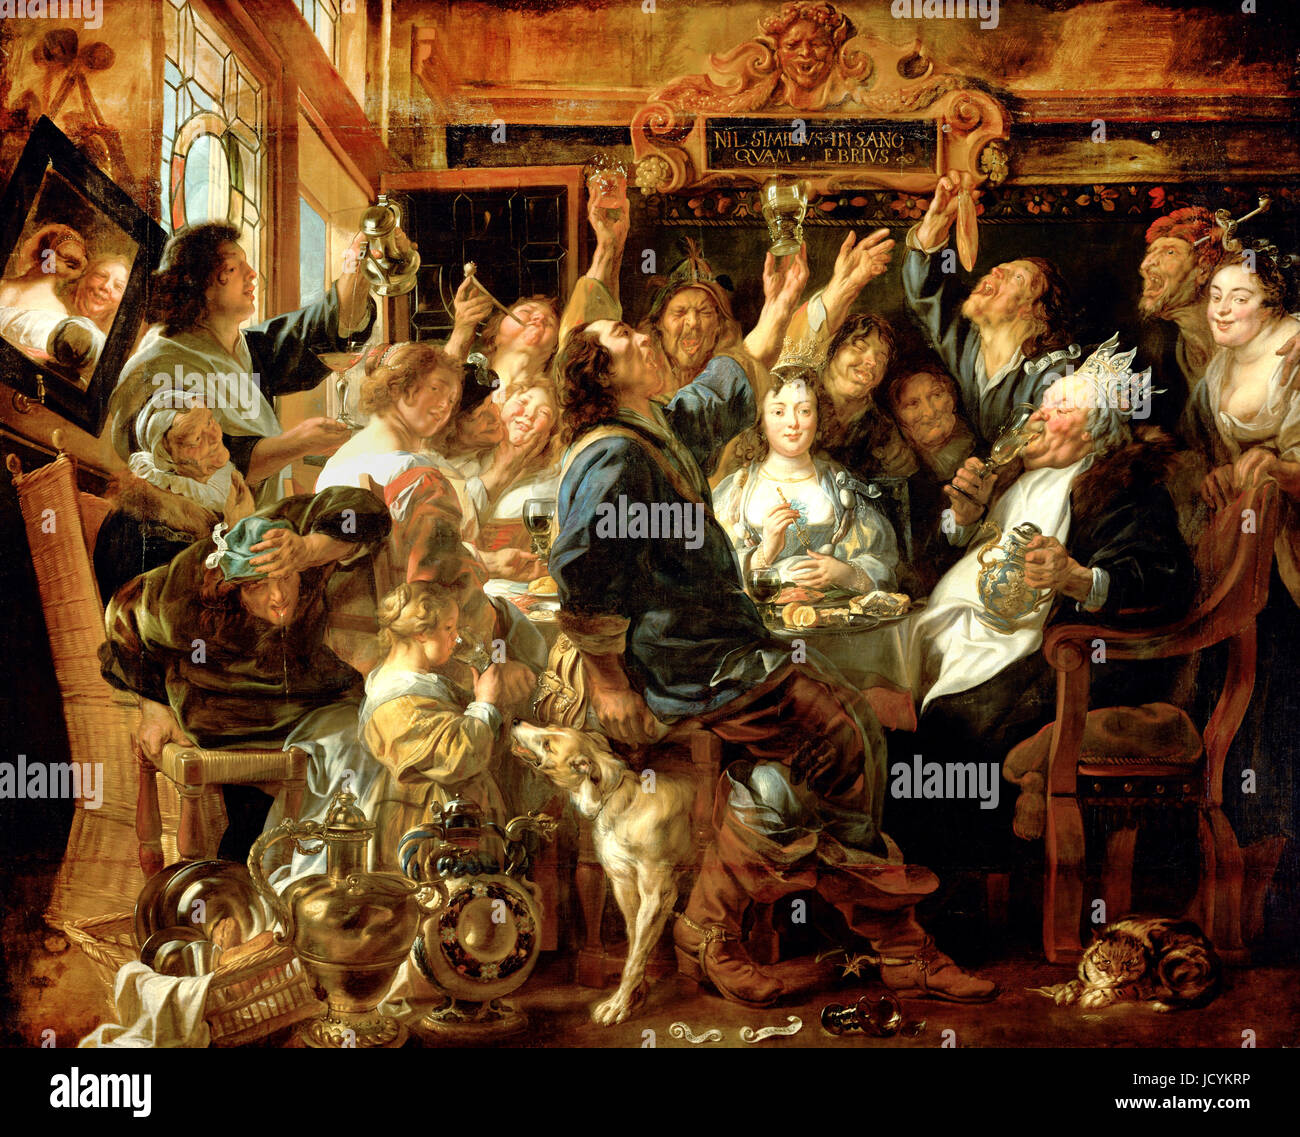 Jacob Jordaens, The Feast of the Bean King 1640-1645 Oil on canvas. Kunsthistorisches Museum, Vienna, Austria. - Stock Image